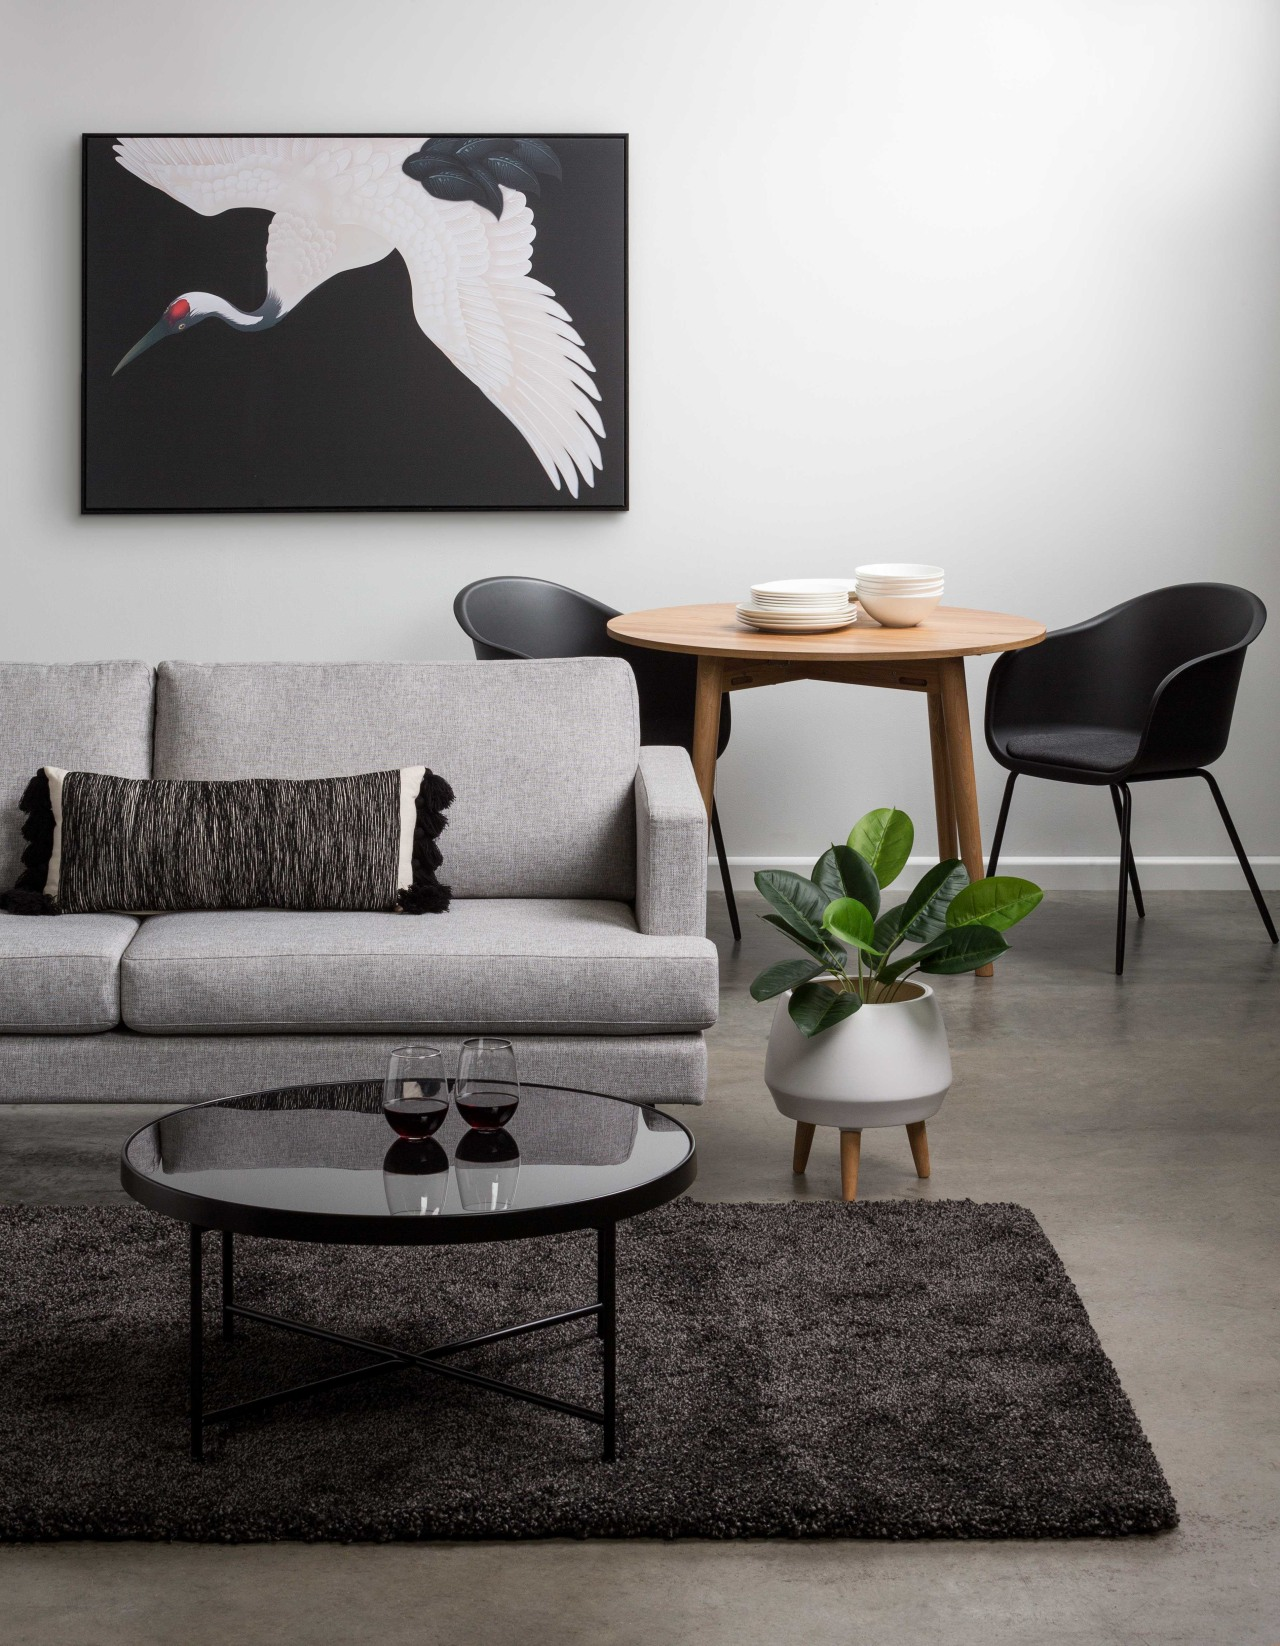 When choosing a rug think about how much black-and-white, chair, coffee table, couch, design, floor, furniture, houseplant, interior design, living room, plant, room, table, wall, white, black, gray